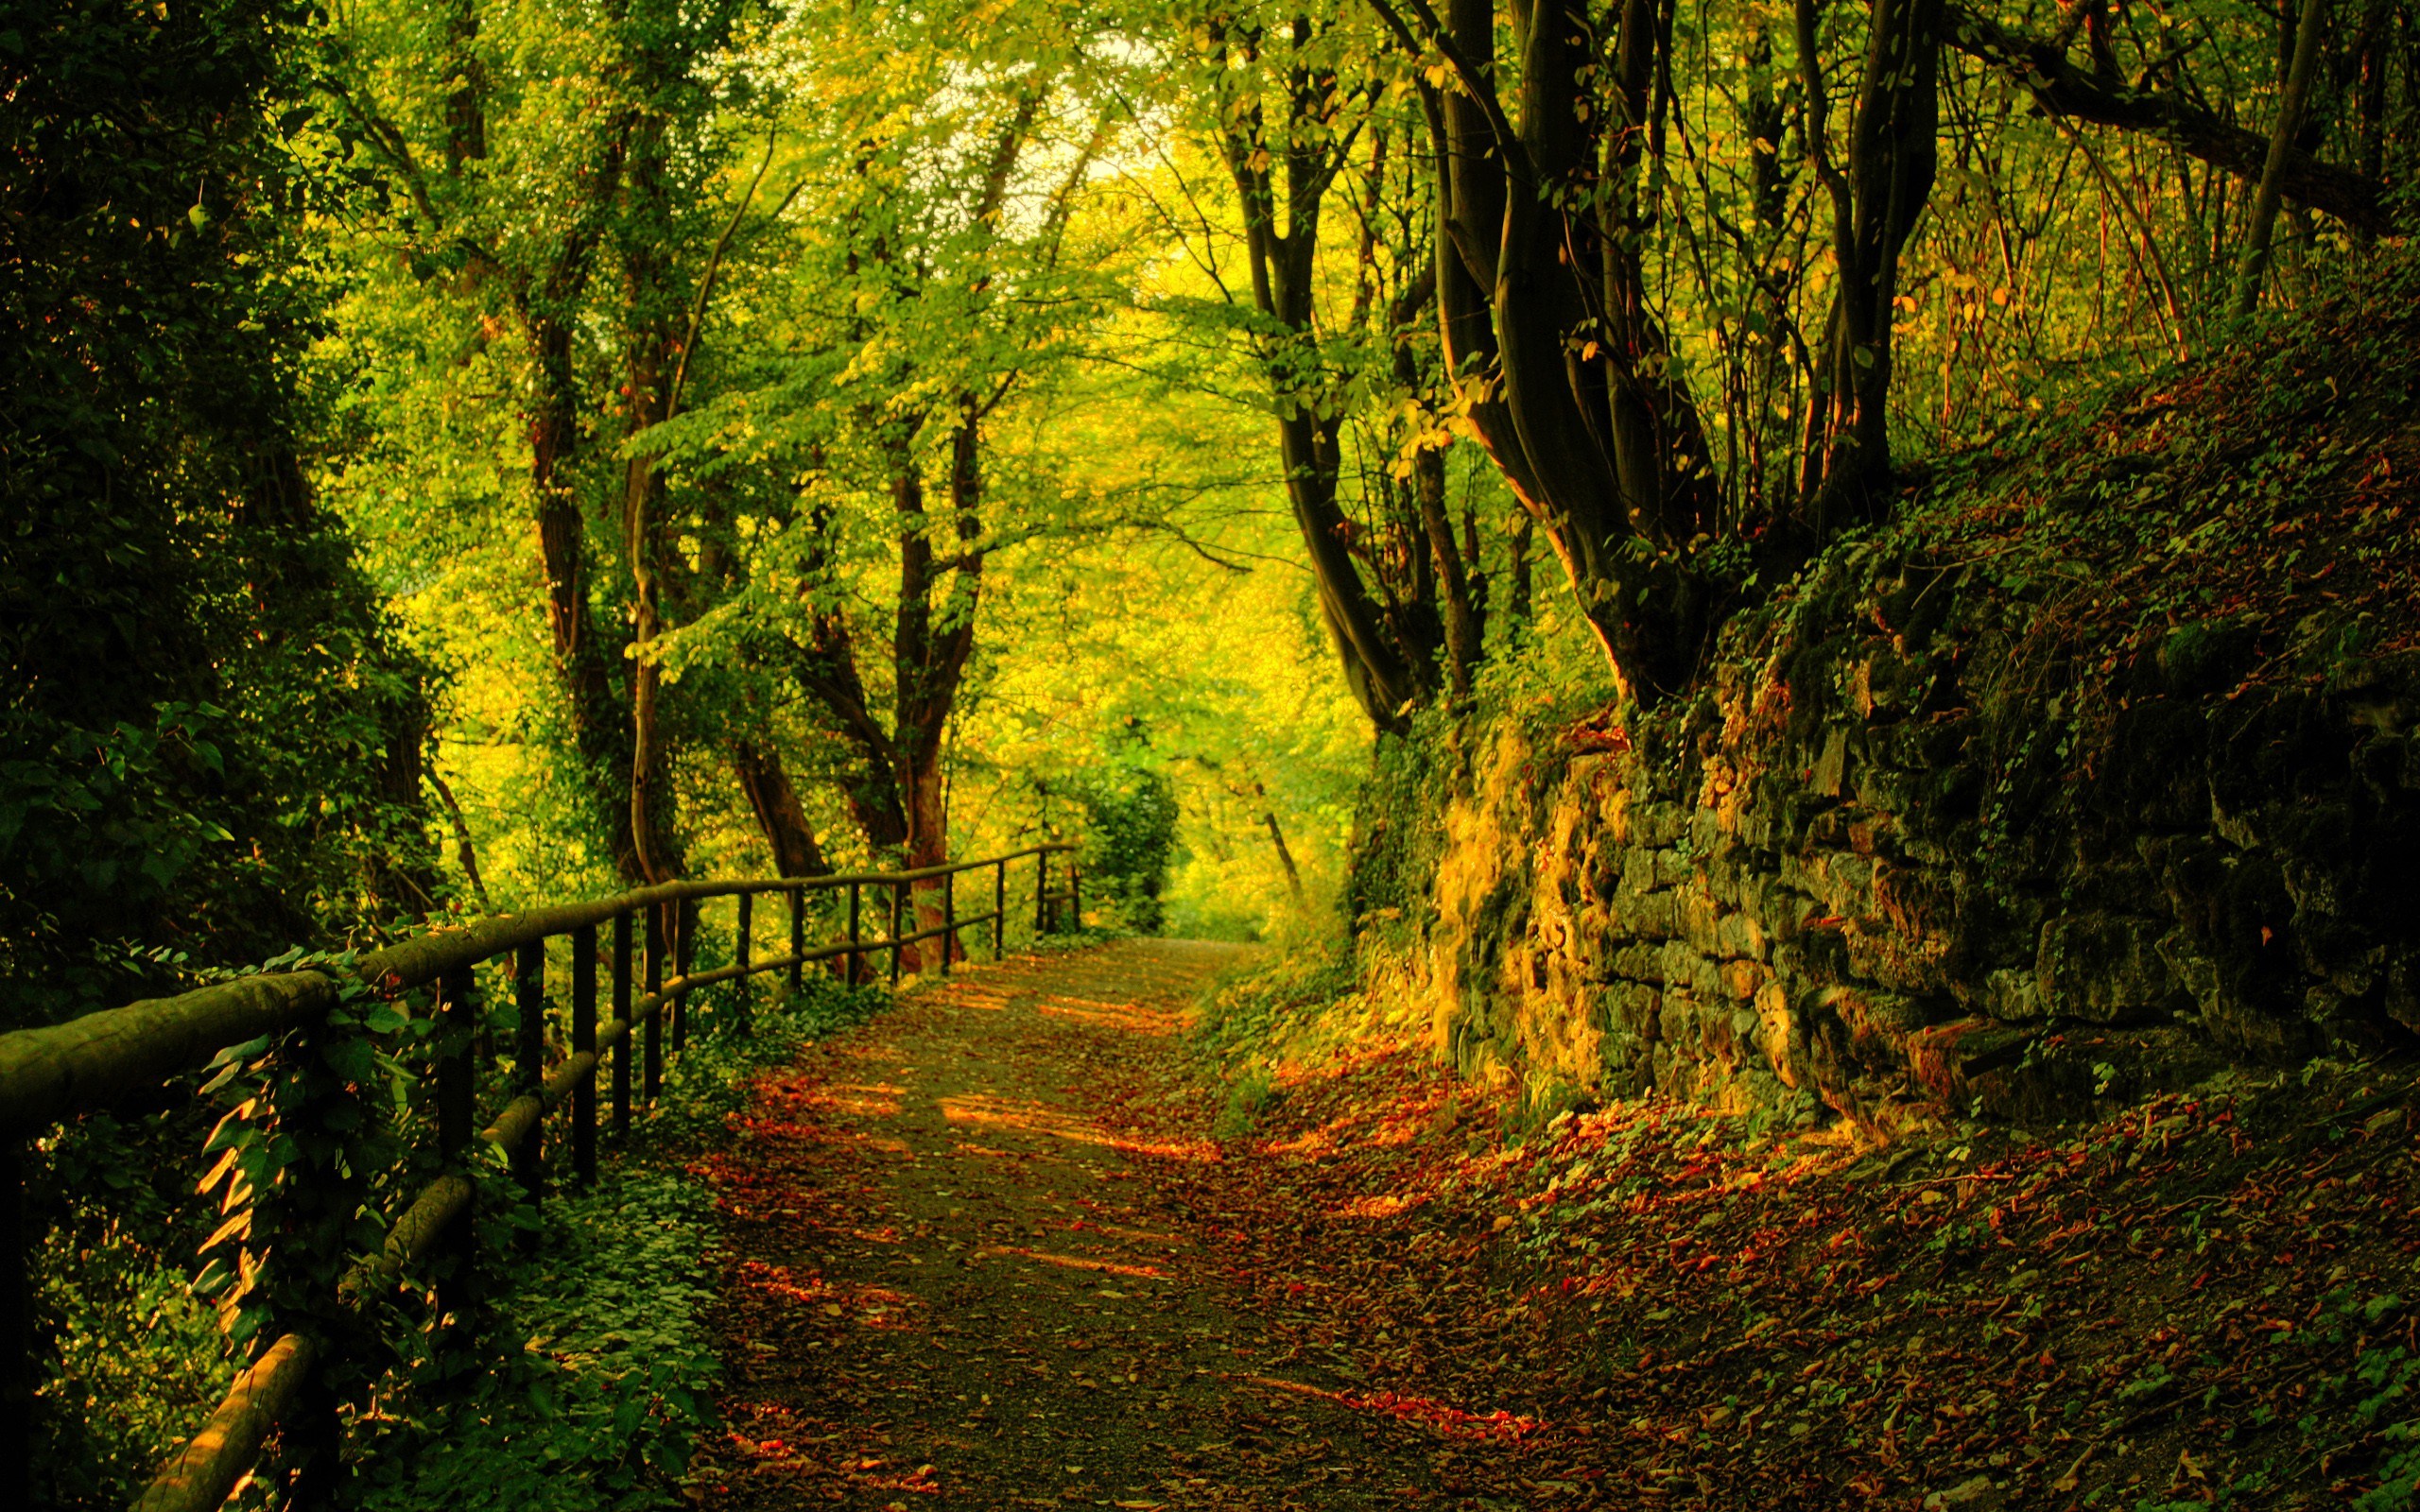 Nature trees forest path wallpaper  2560x1600  19836  WallpaperUP